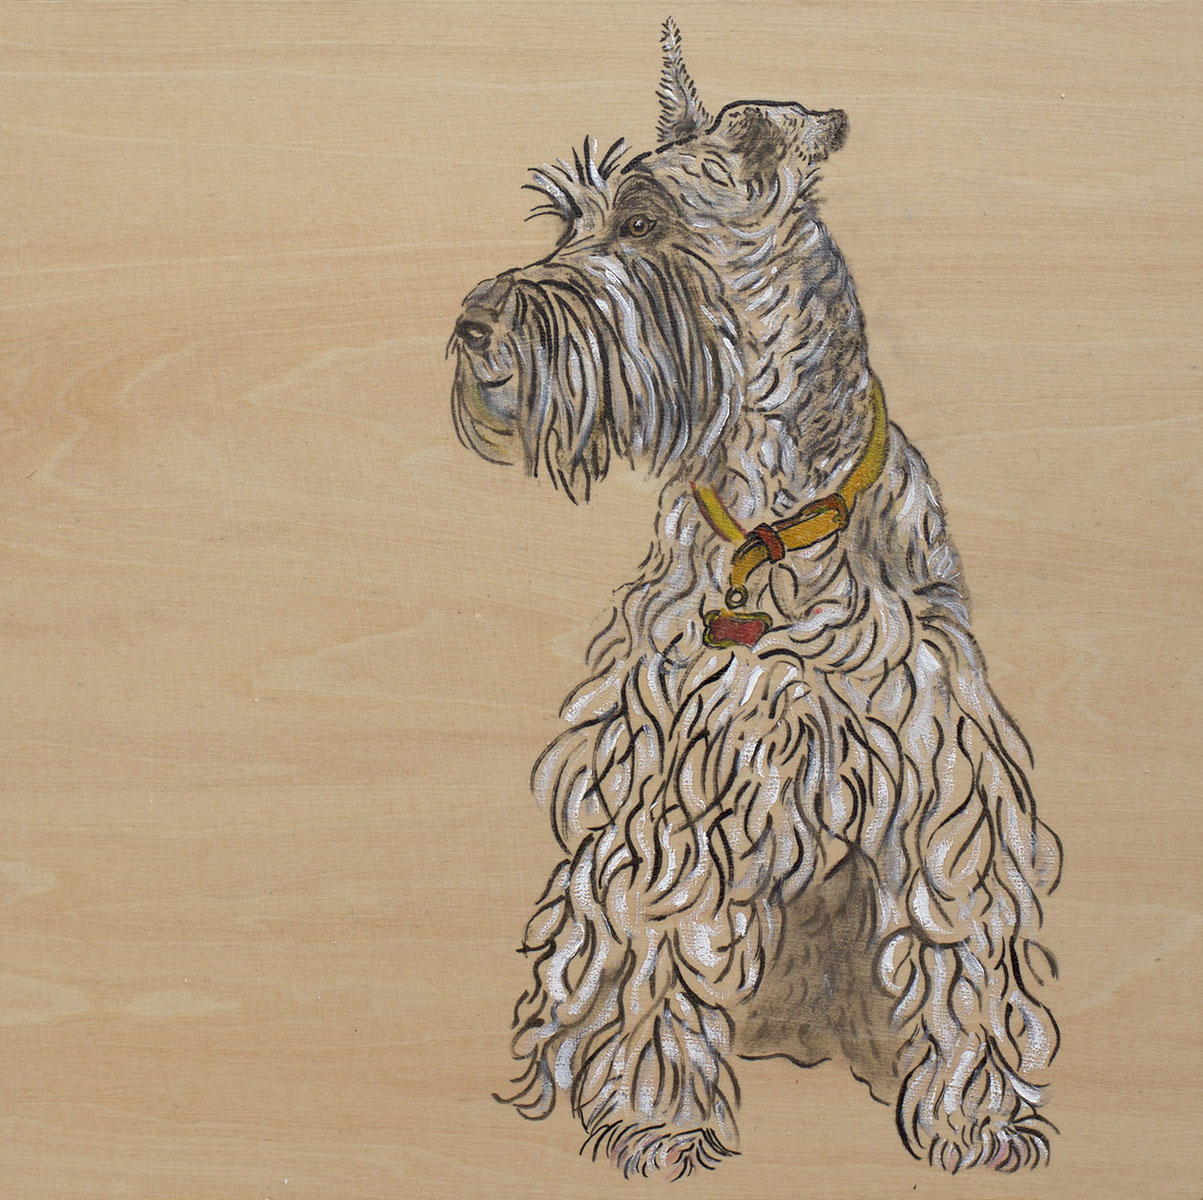 dog-portrait-on-wood-panel-malayka-gormally.jpg